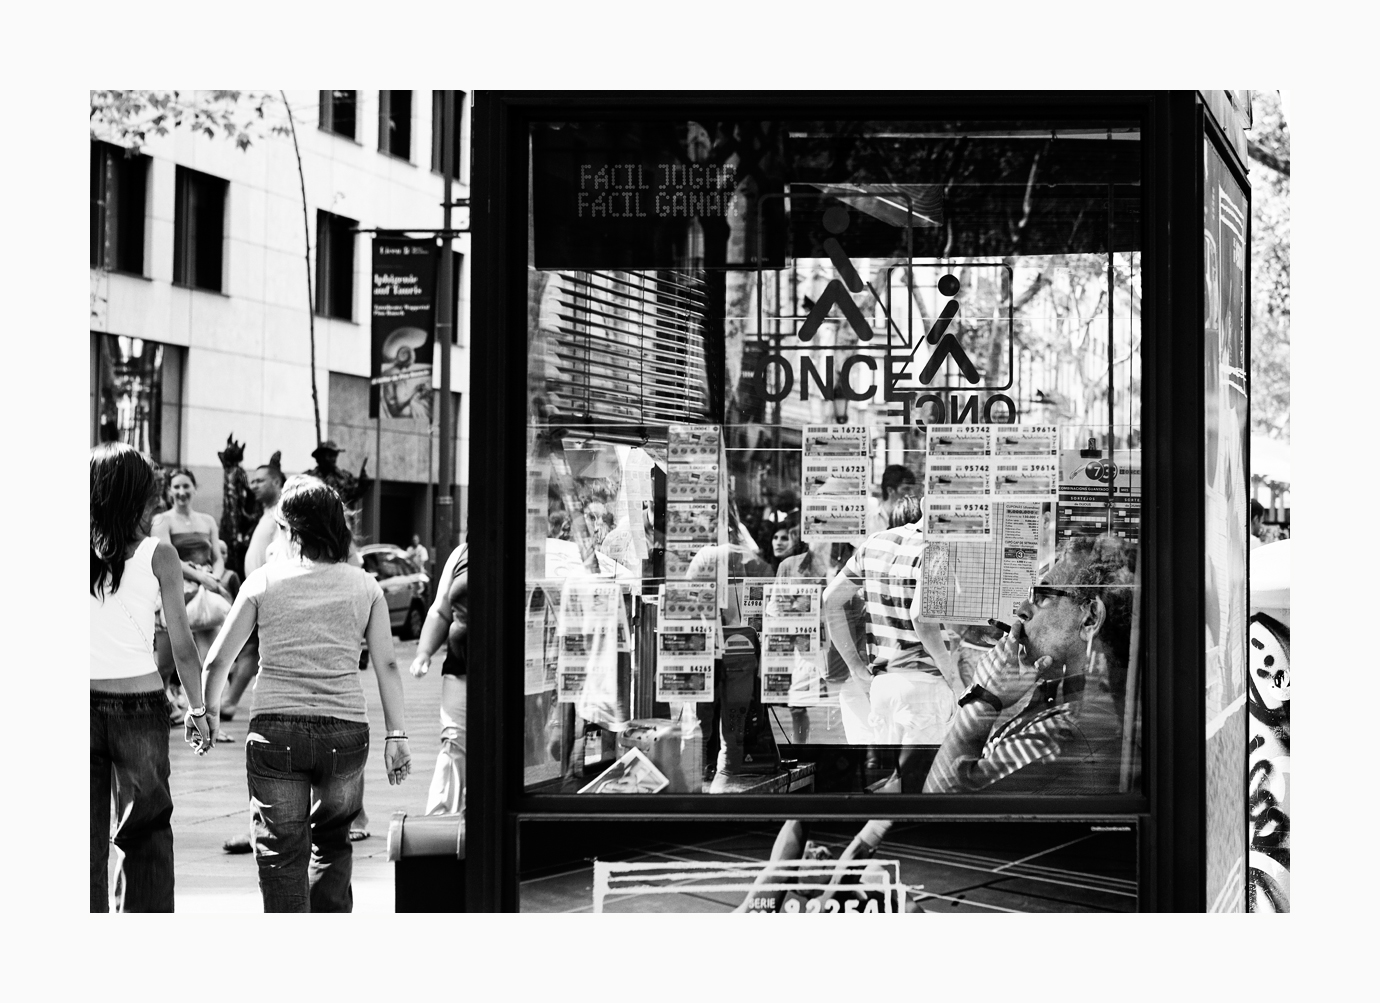 Fine art image of a man smoking in his lottery stand at La Rambla, Barcelona, Spain.